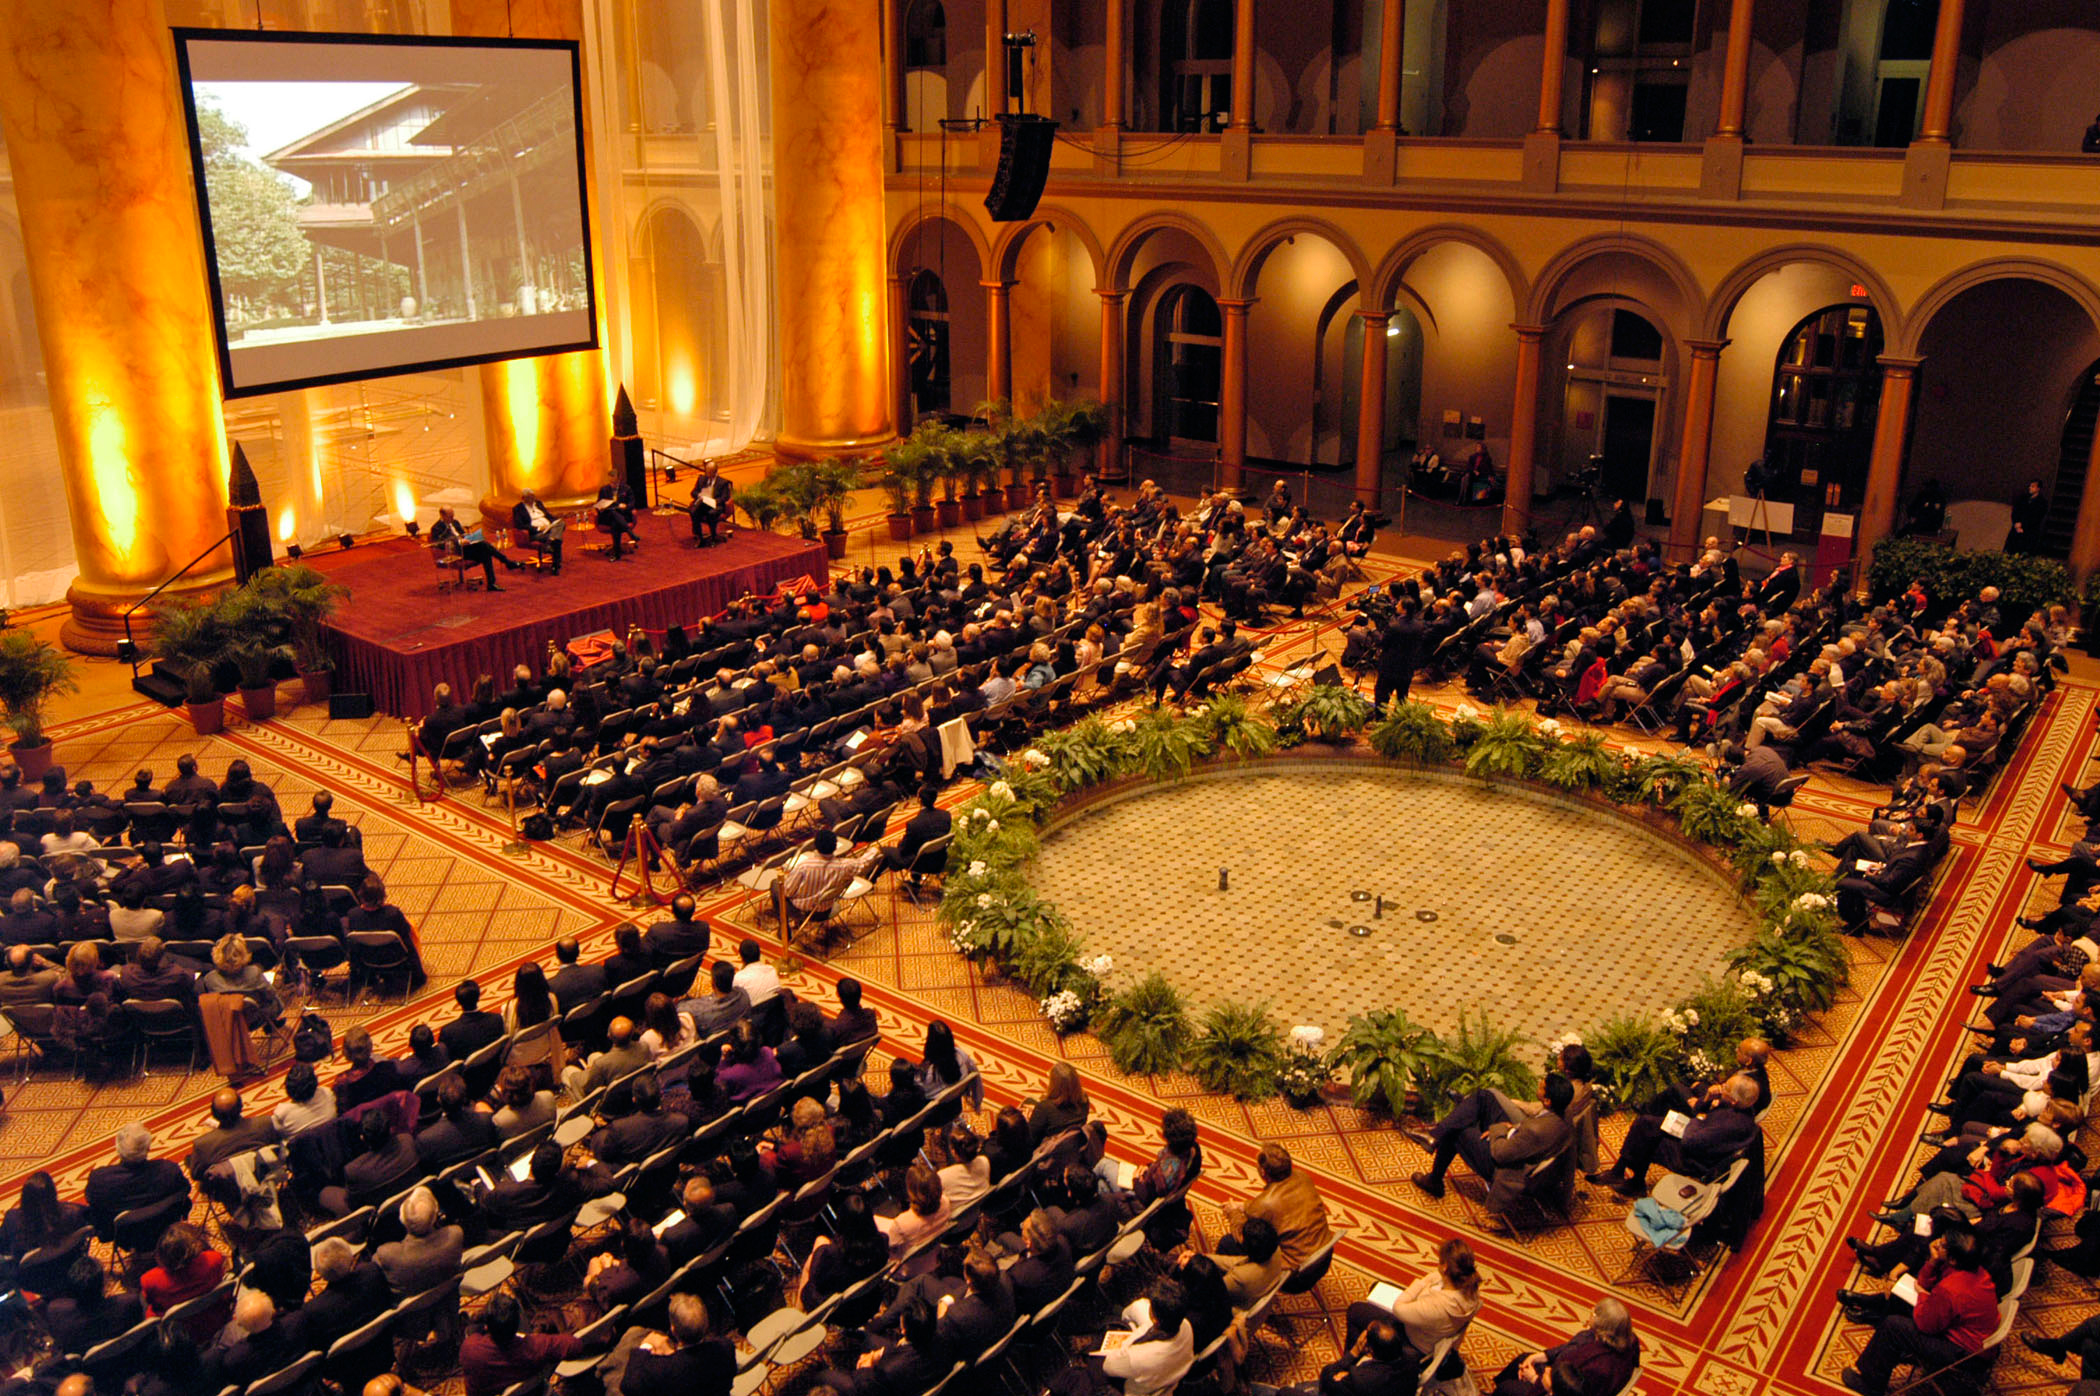 Awards ceremony at the National Building Museum for the 2005 prize winner Aga Kahn